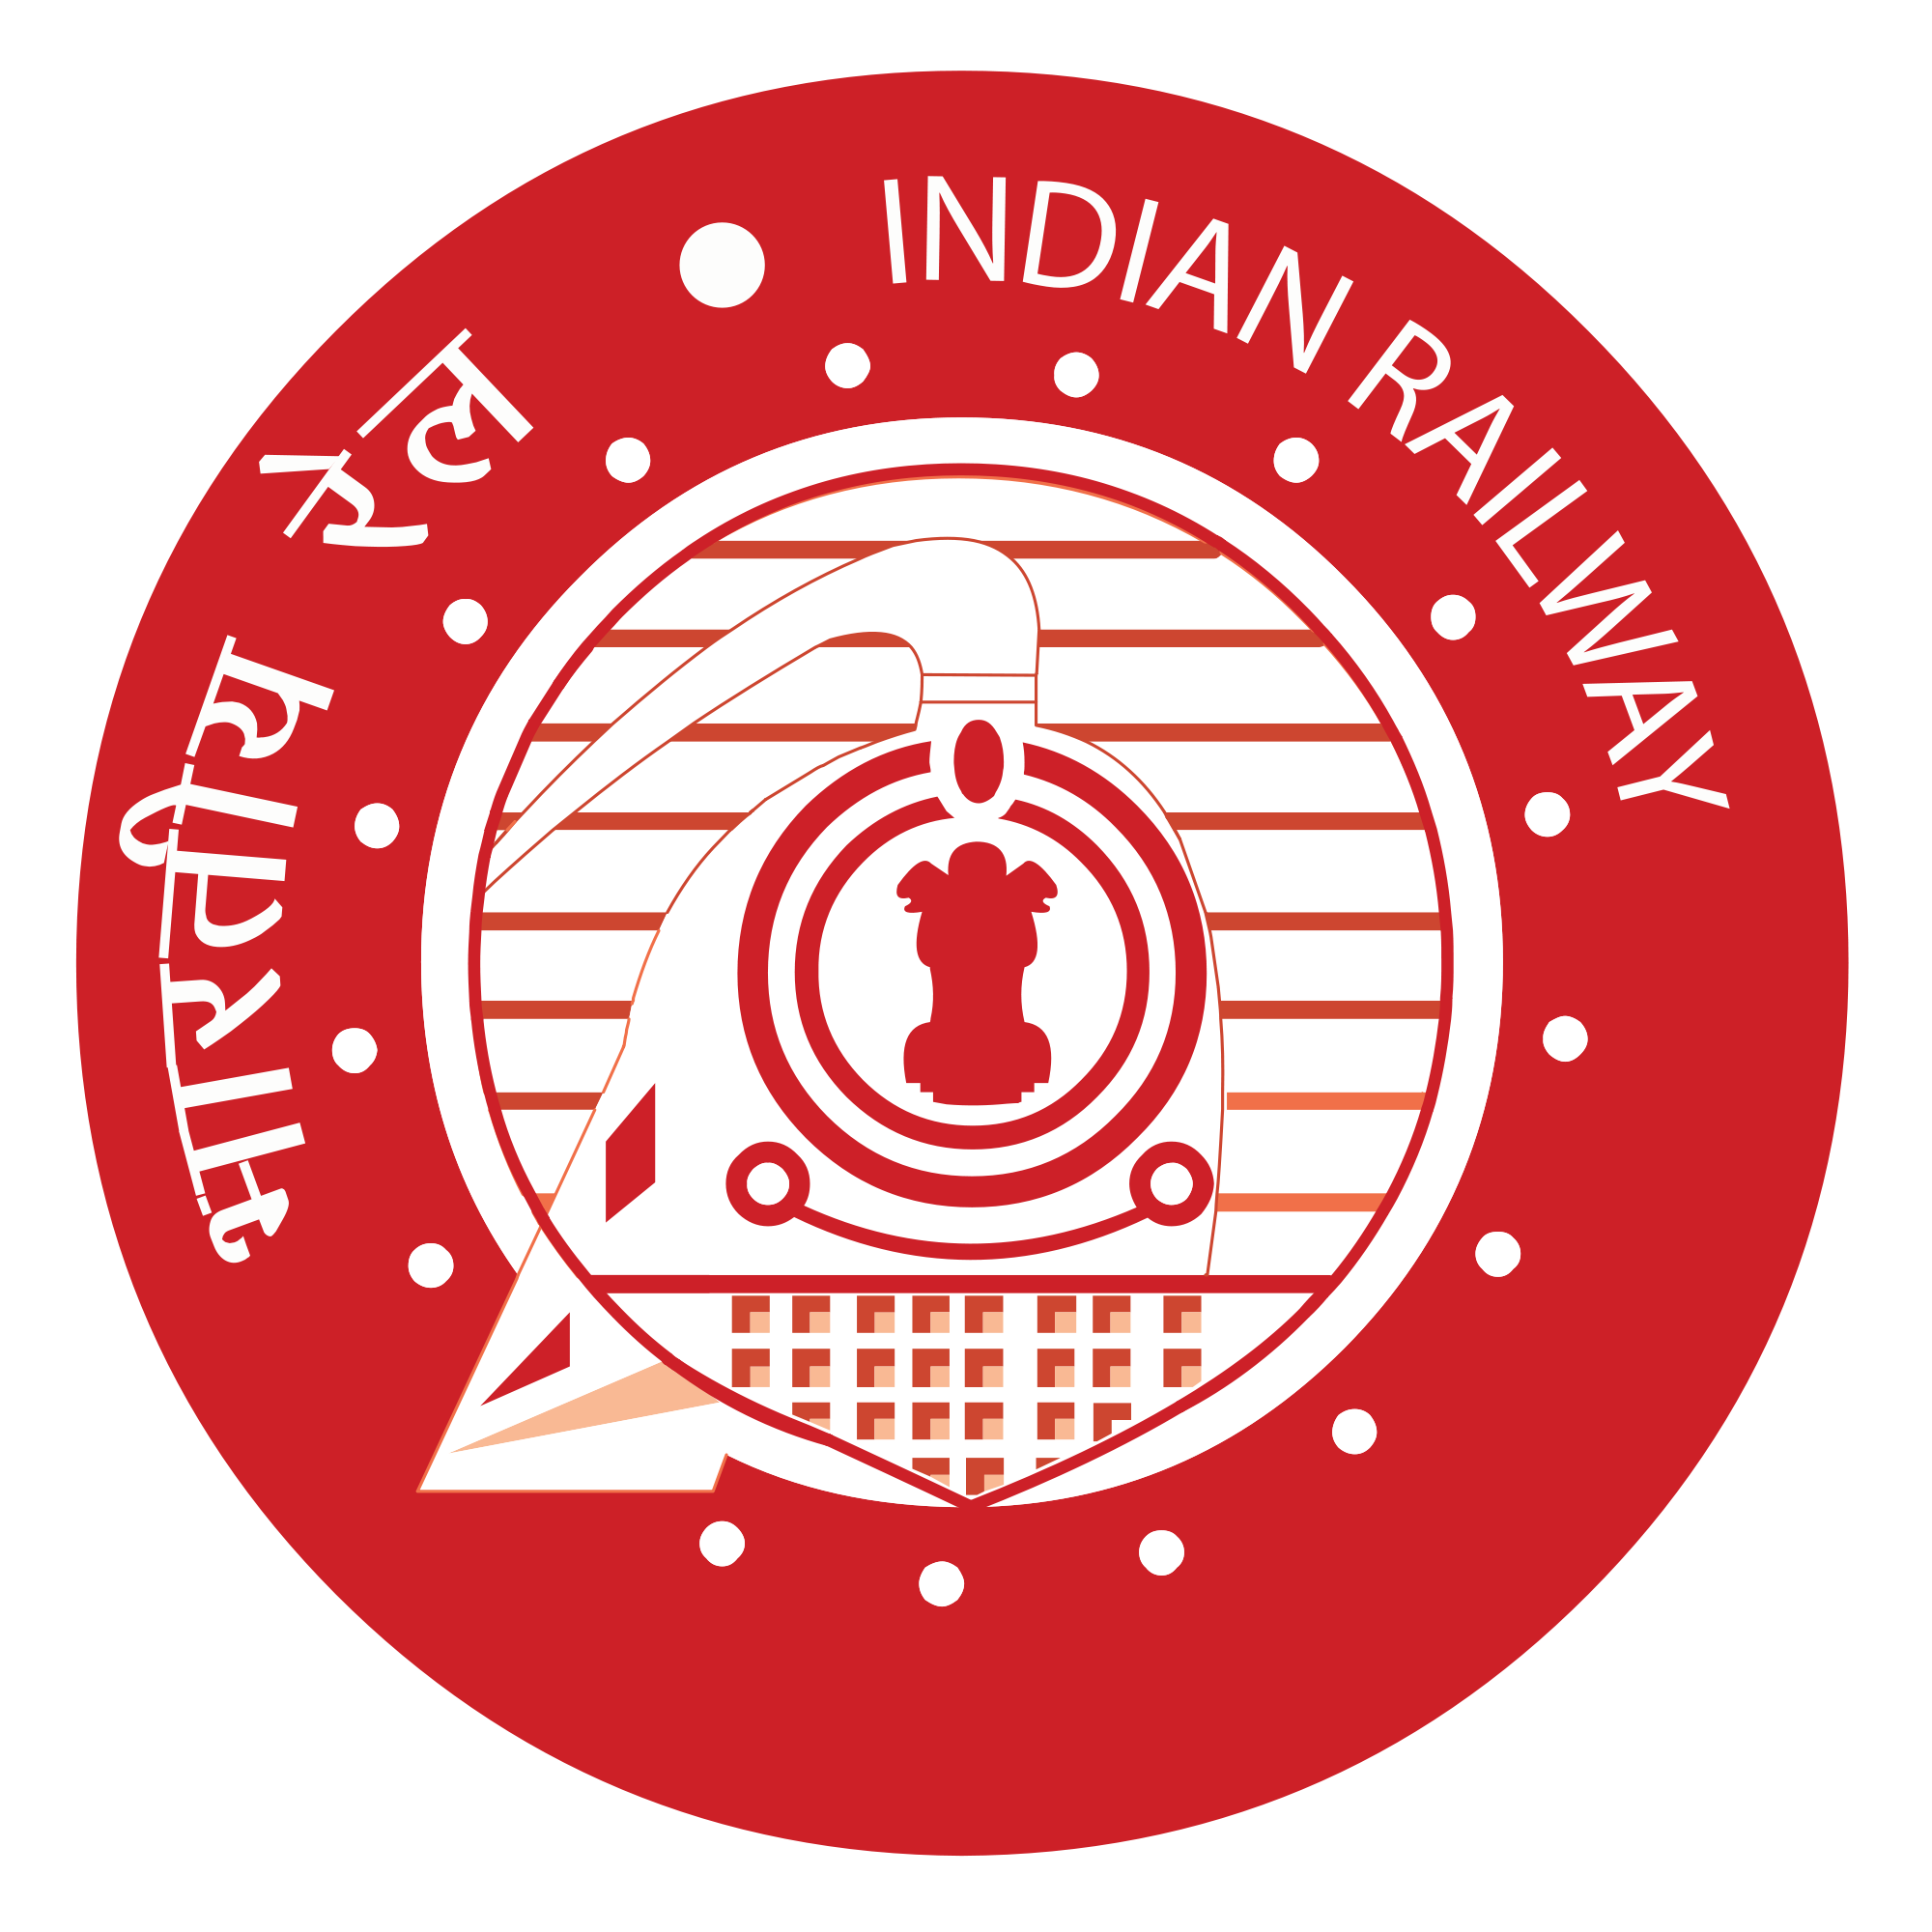 Rrb Group D Admit Card  Download Railway Group D Hall Tickets Call Letter Exam Dates